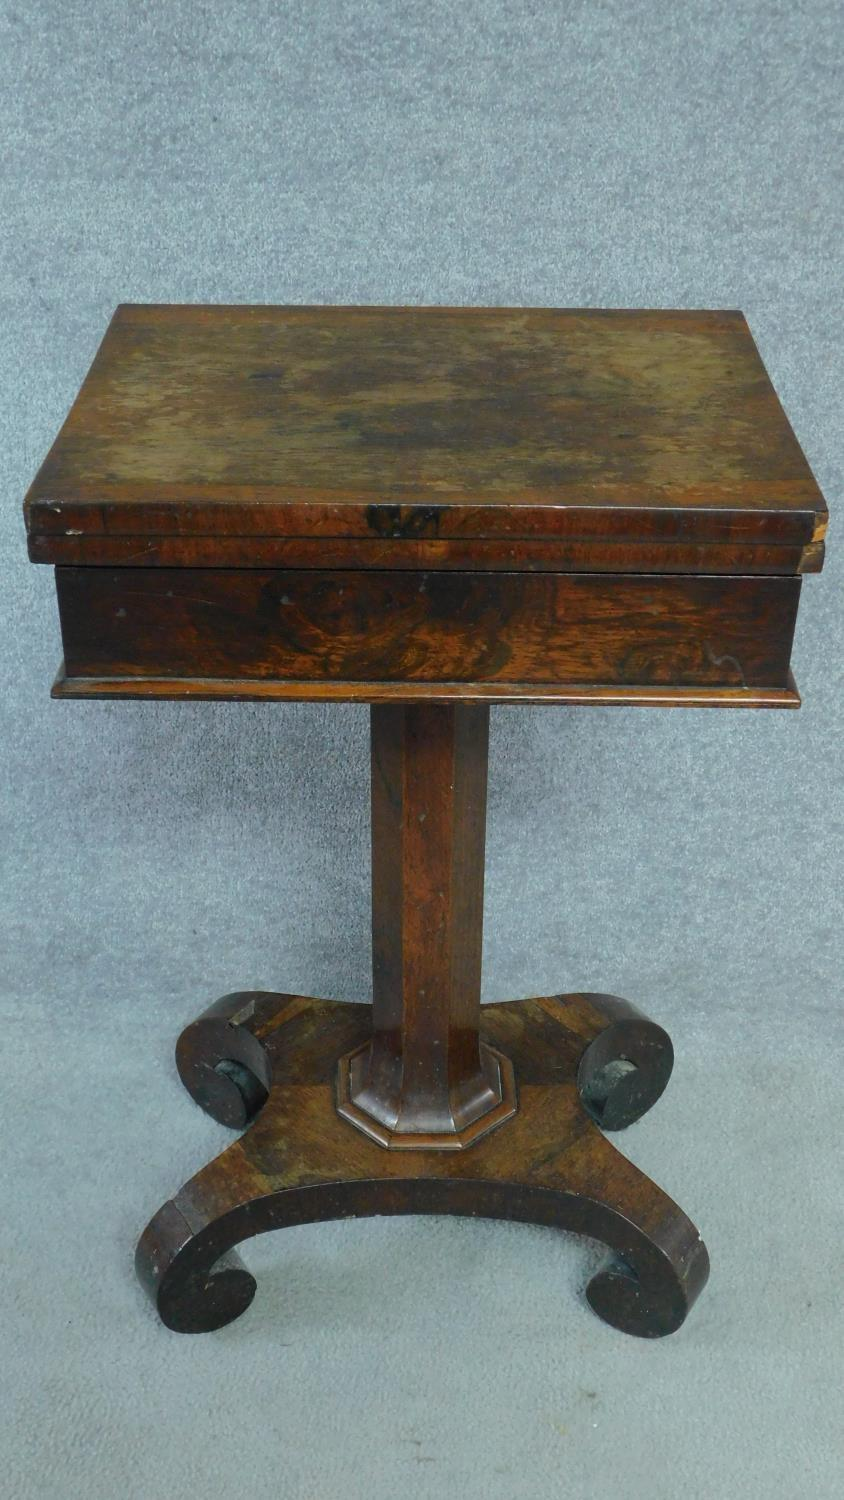 A William IV mahogany work table with fold over top enclosing interior compartment. H.73 W.71 D.46